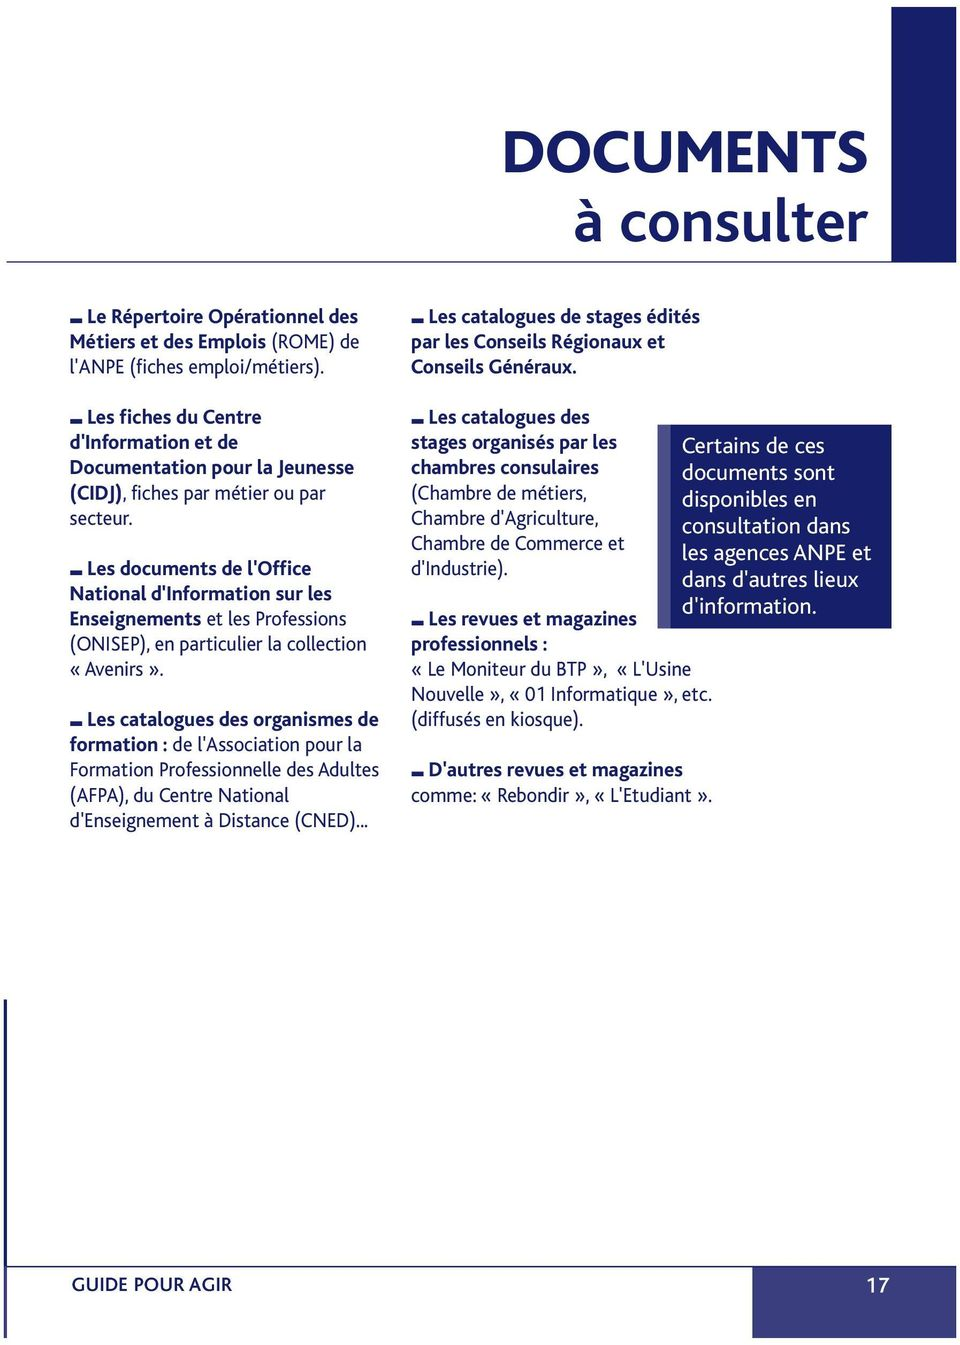 Les documents de l'office National d'information sur les Enseignements et les Professions (ONISEP), en particulier la collection «Avenirs».